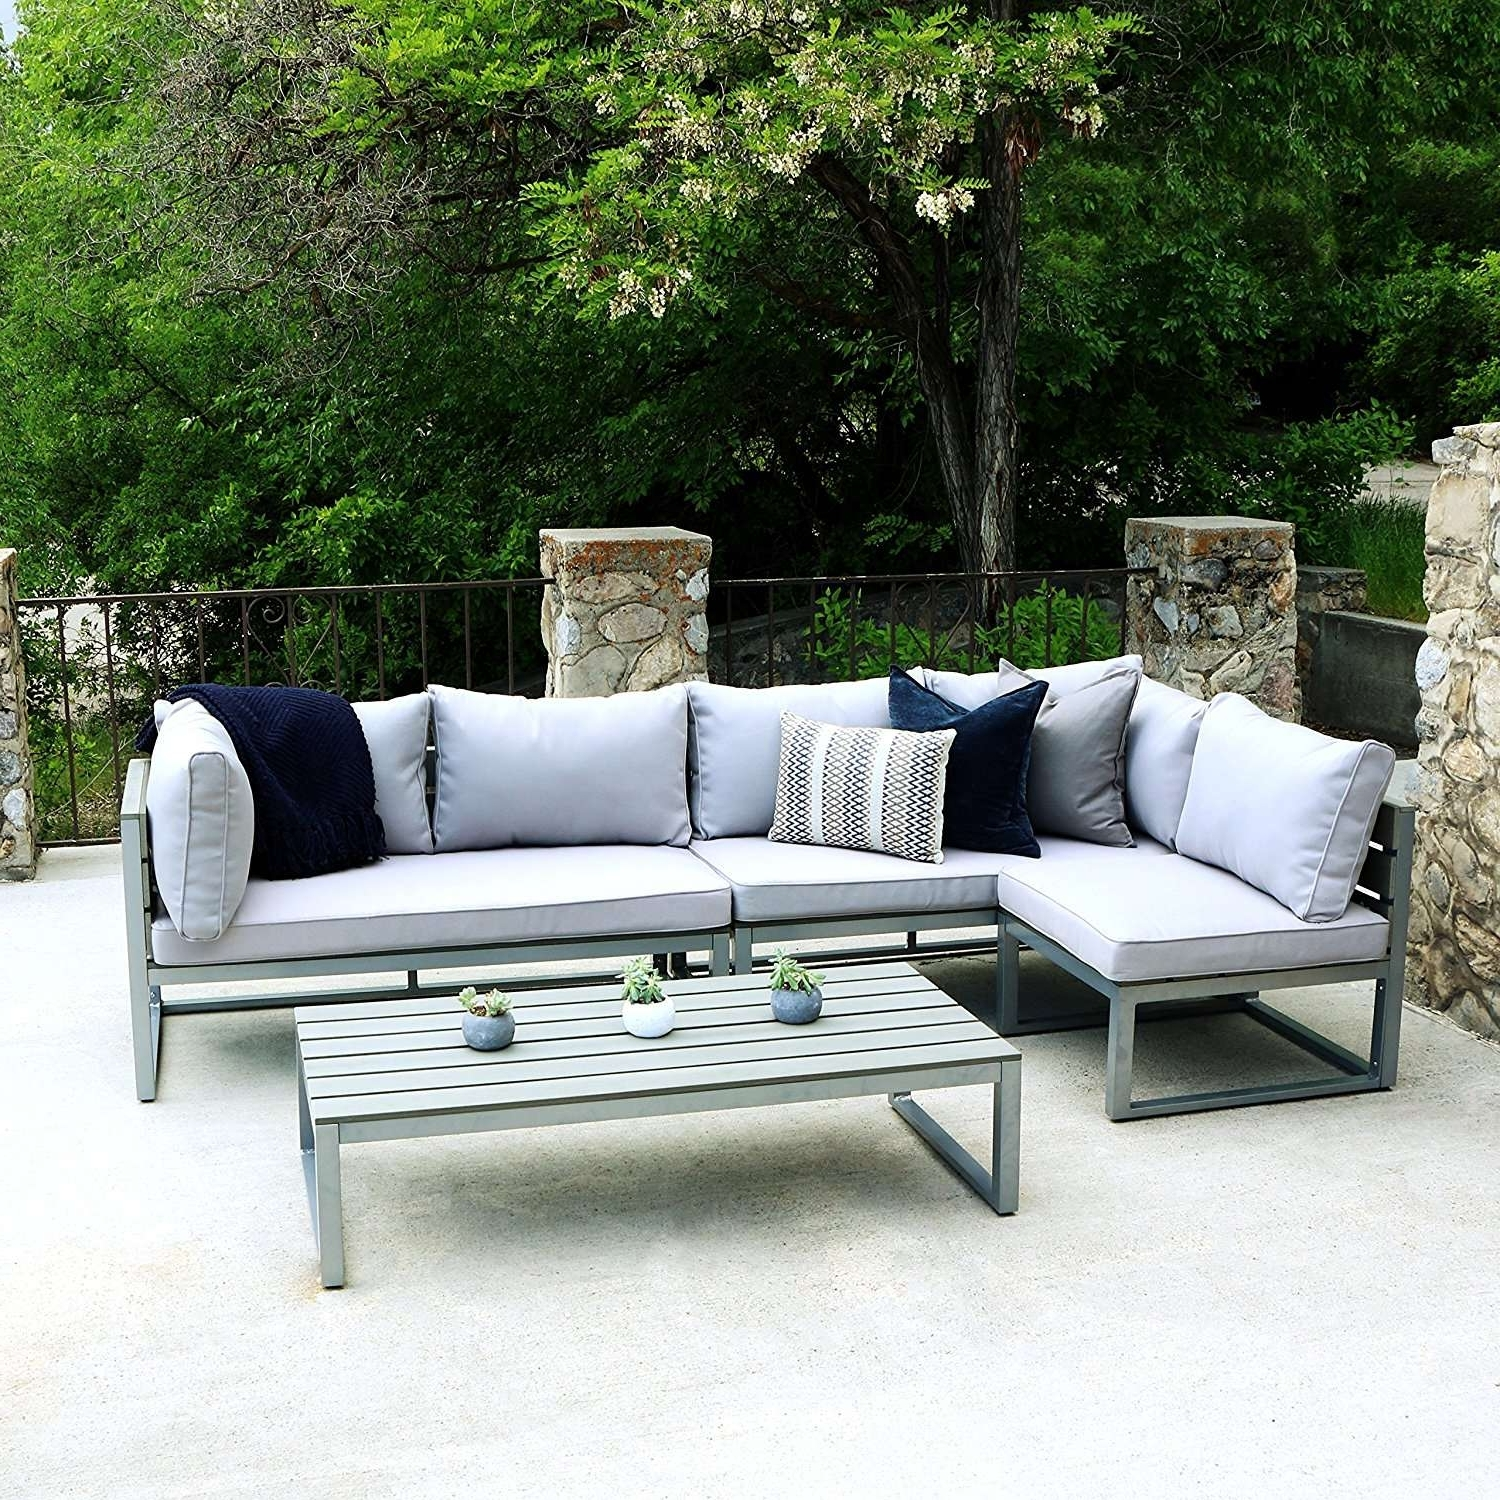 Round Patio Conversation Sets Throughout Famous Conversation Sets Outdoor Sectional Seating Round Patio Concept Of (View 6 of 20)